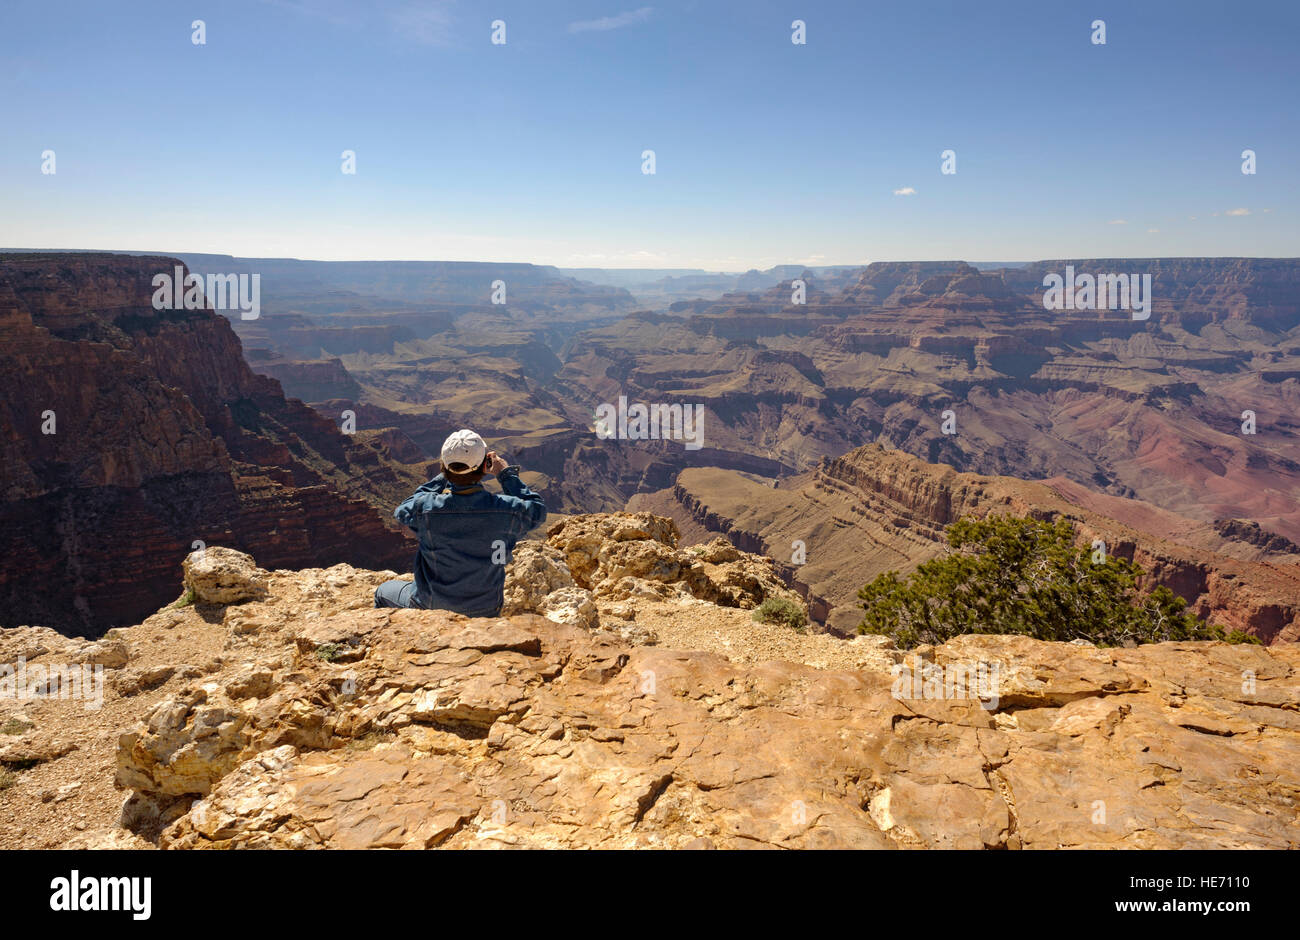 Adventure travel man at edge of the Grand Canyon south rim Pipe Creek Vista taking photo, Arizona USA rear view Stock Photo